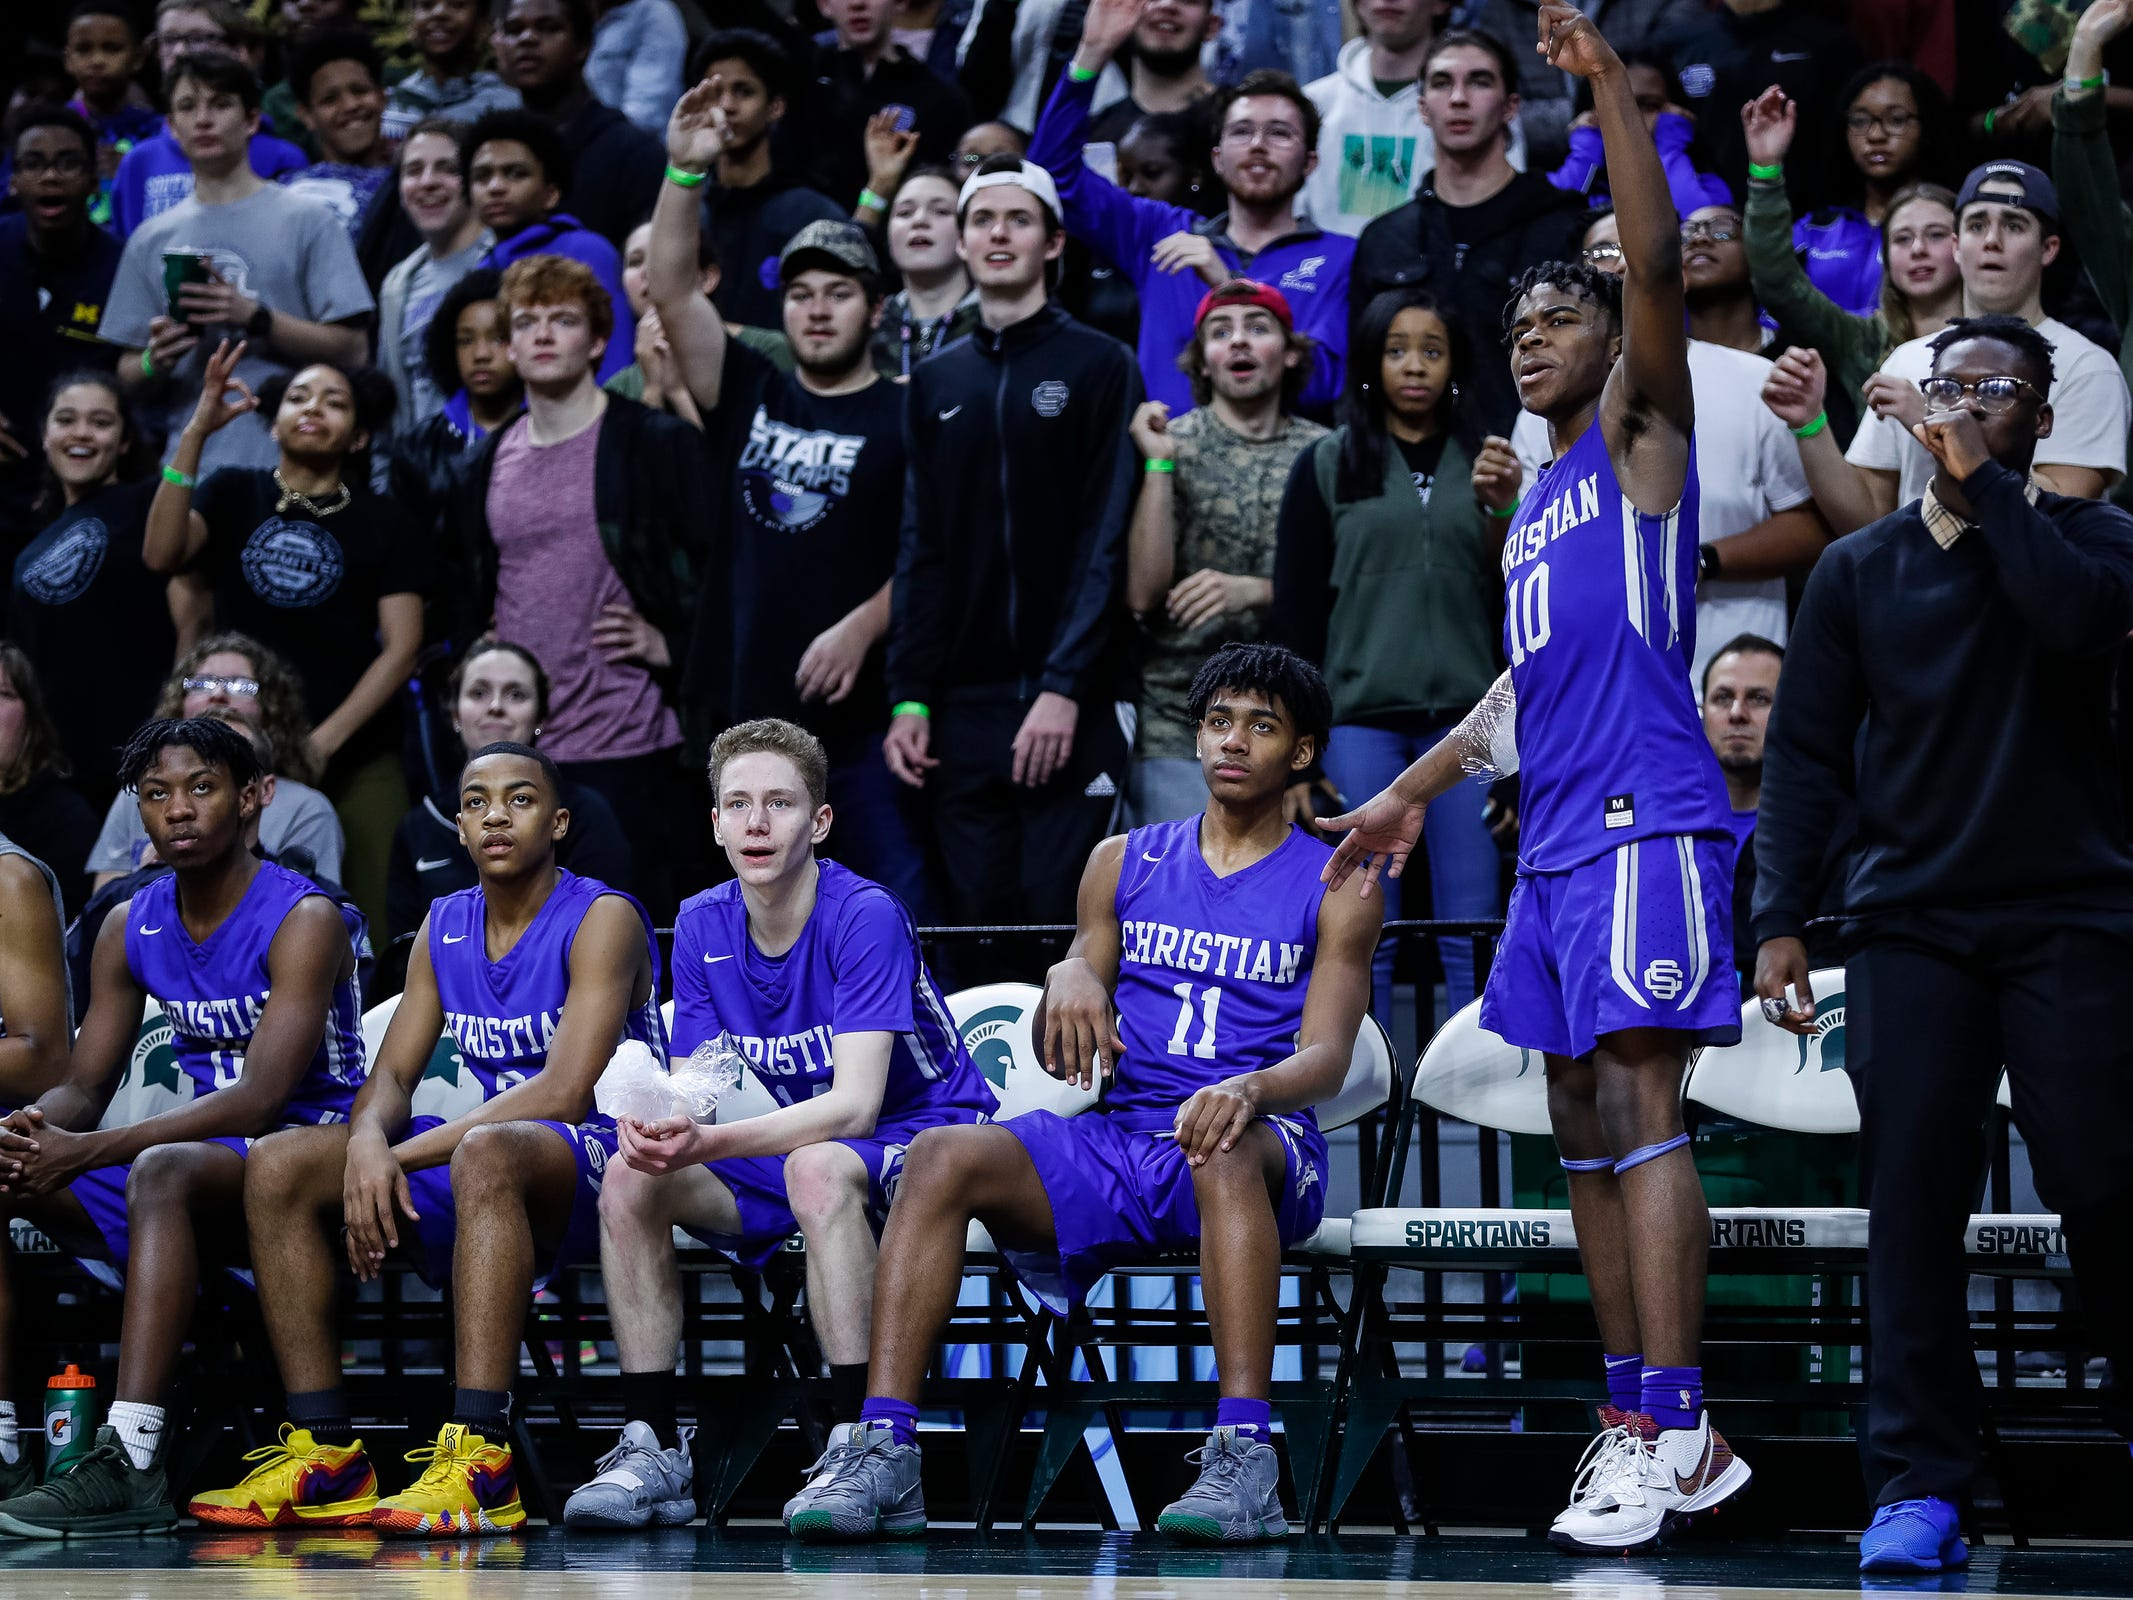 Southfield Christian bench cheer for their teammates during the second half of MHSAA Division 4 semifinal against Dollar Bay at the Breslin Center in East Lansing, Thursday, March 14, 2019.